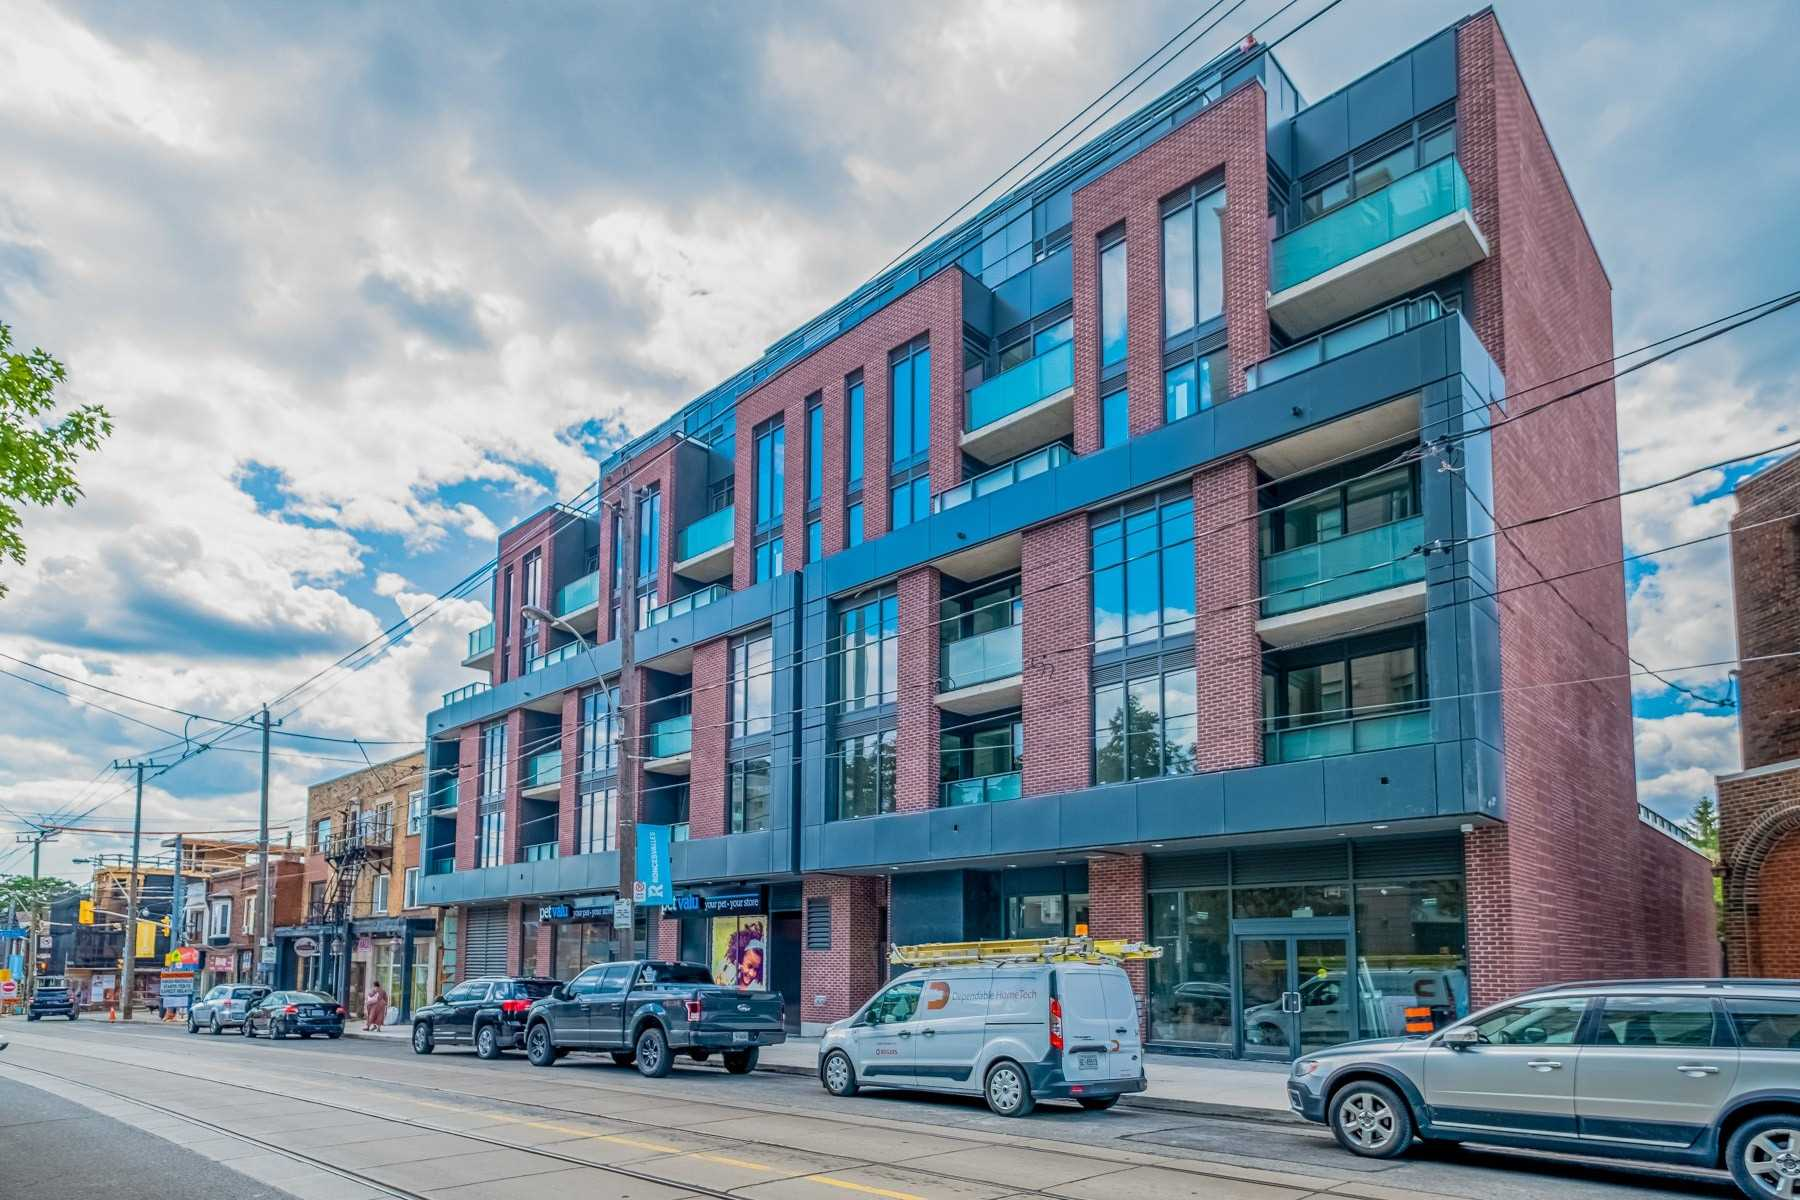 Commercial/retail For Sale In Toronto , ,Commercial/retail,For Sale,9,Roncesvalles